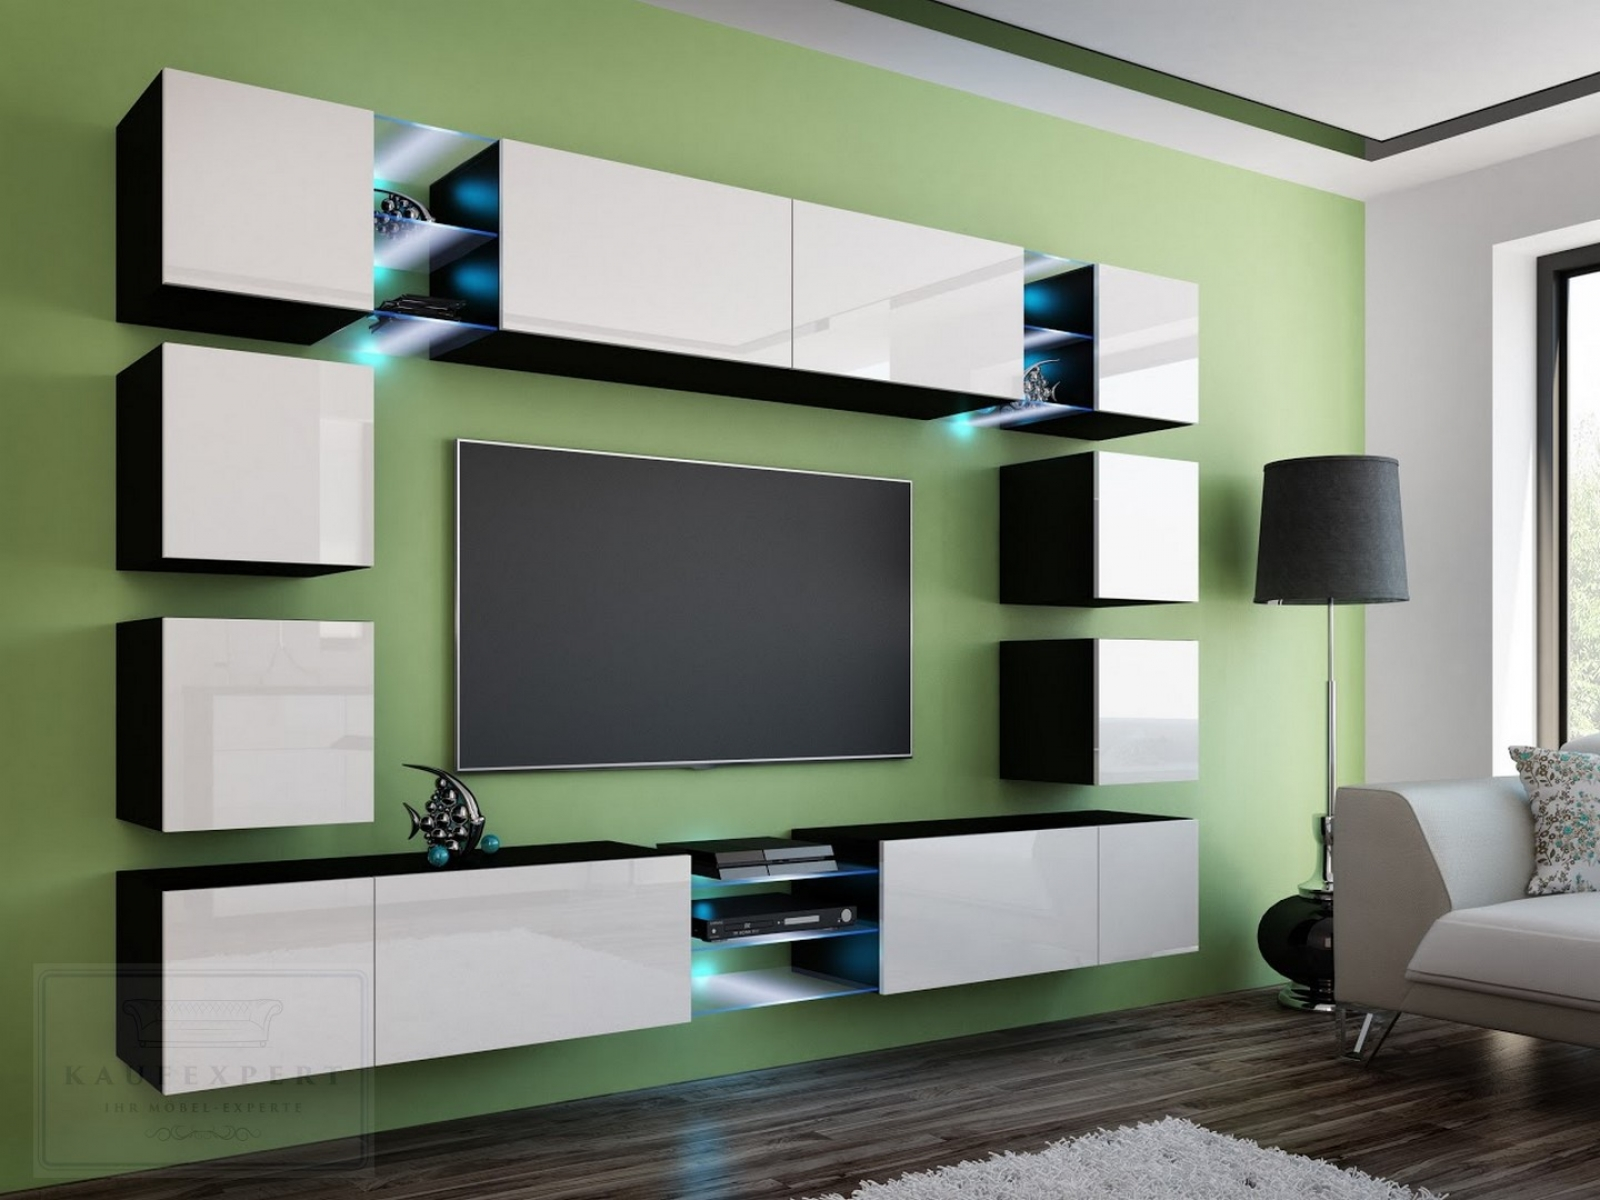 kaufexpert wohnwand edge wei hochglanz schwarz mediawand medienwand design modern led. Black Bedroom Furniture Sets. Home Design Ideas